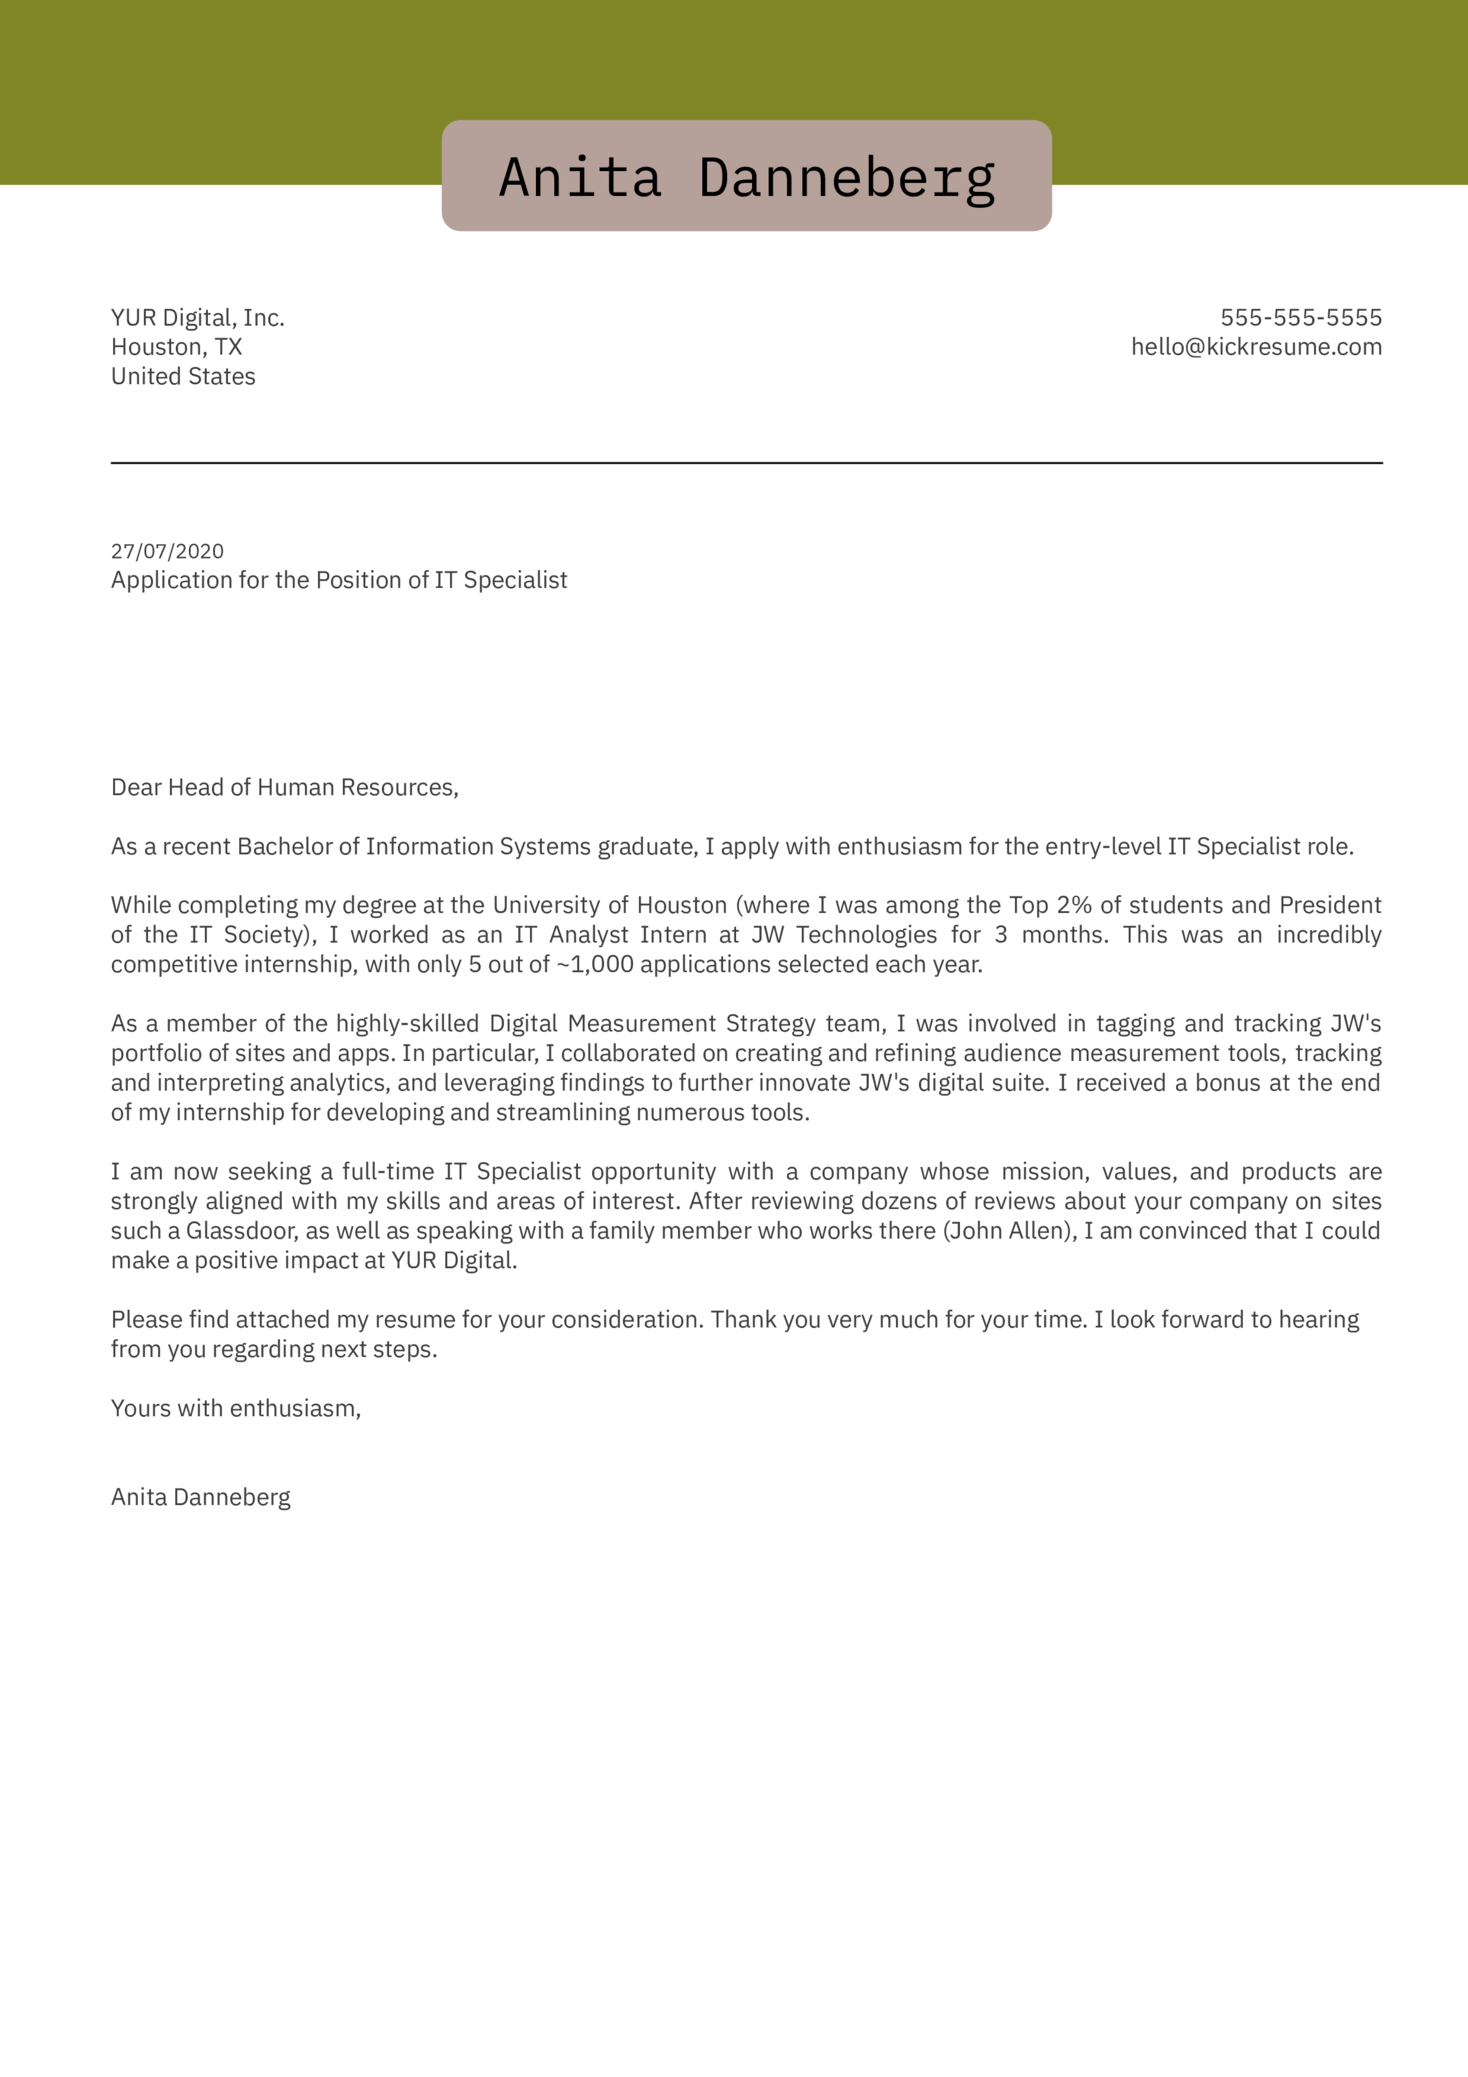 College Graduate Cover Letter Example